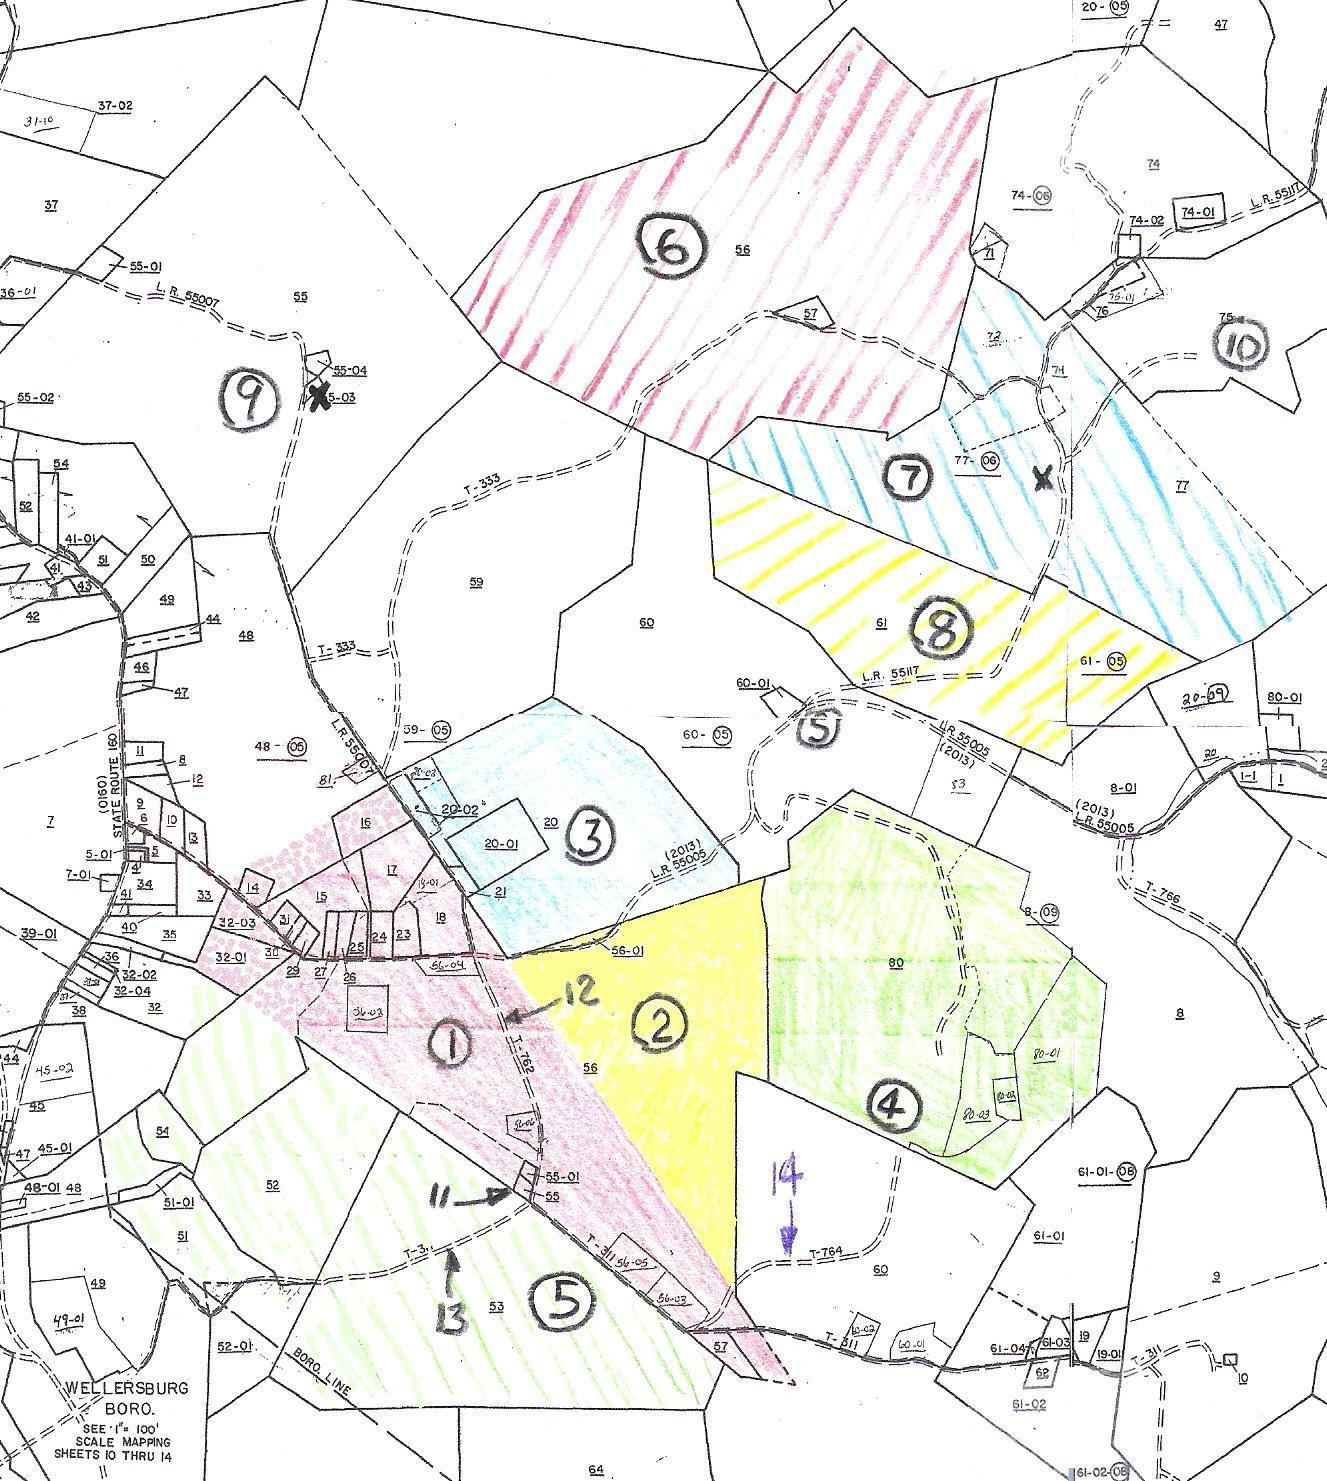 Michael Korns, Sr. tracts 1 & 2, shown on 2008 plat map.